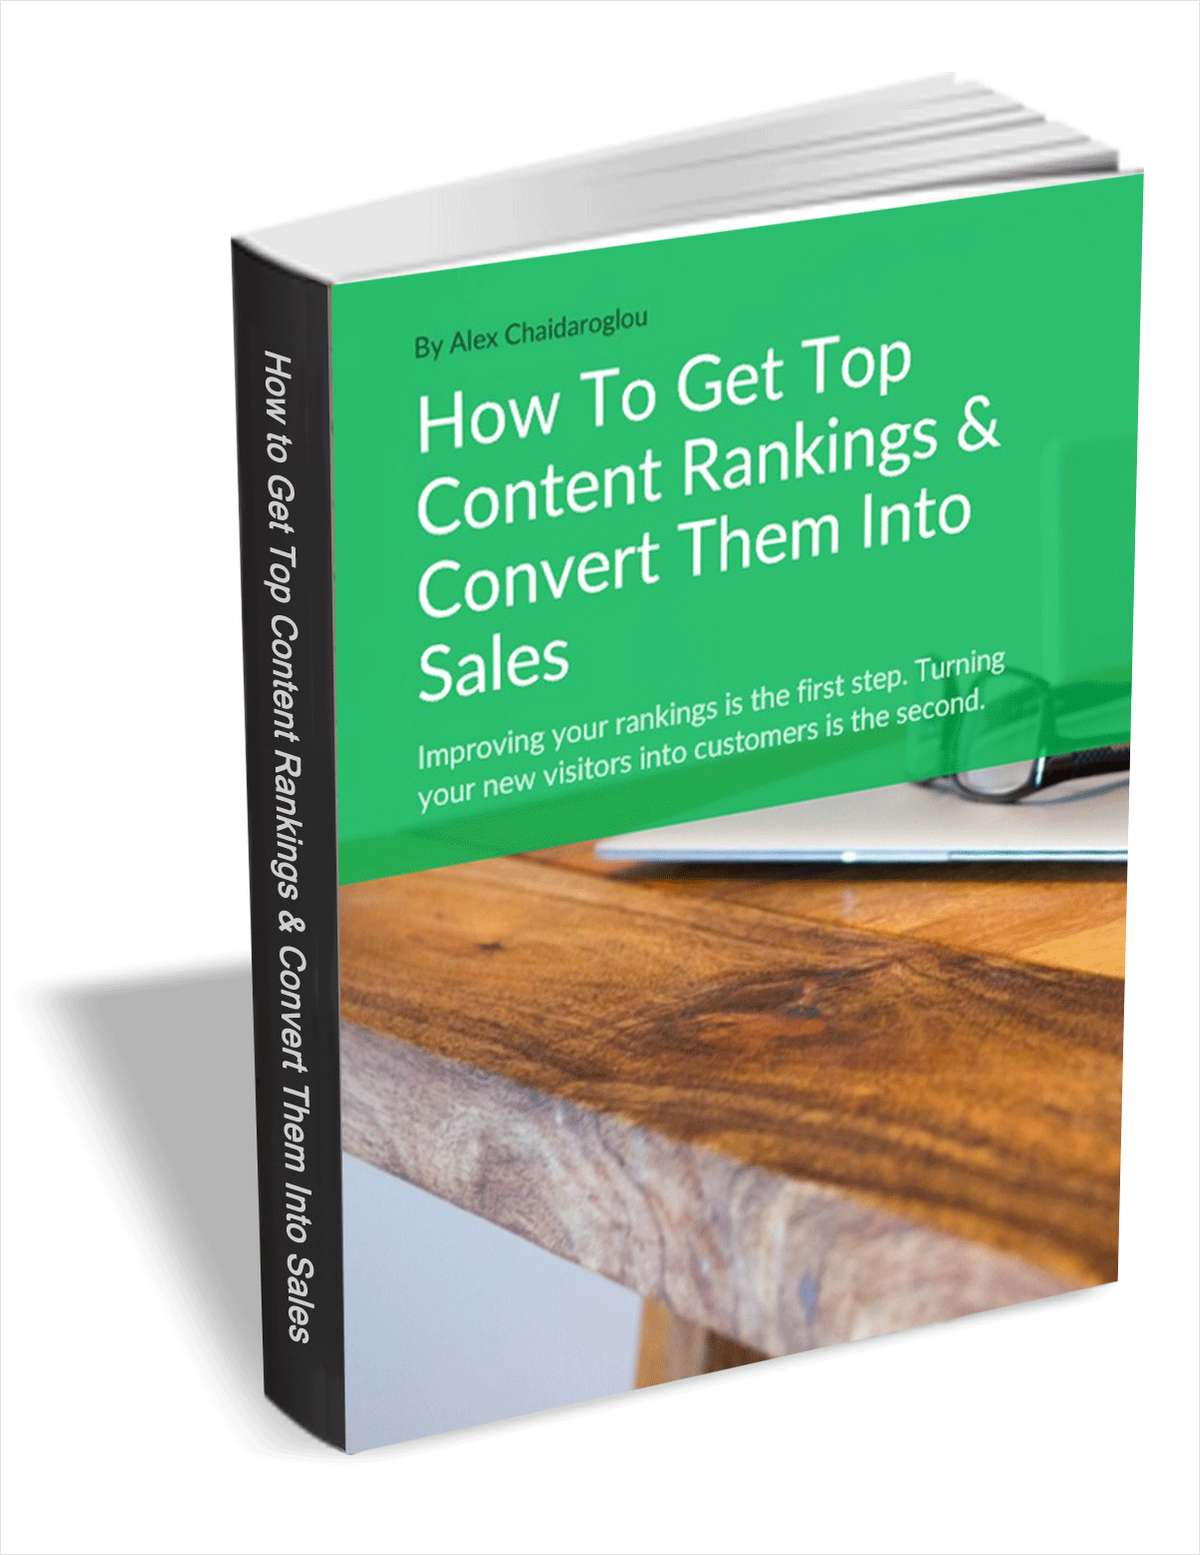 How To Get Top Content Rankings & Convert Them Into Sales